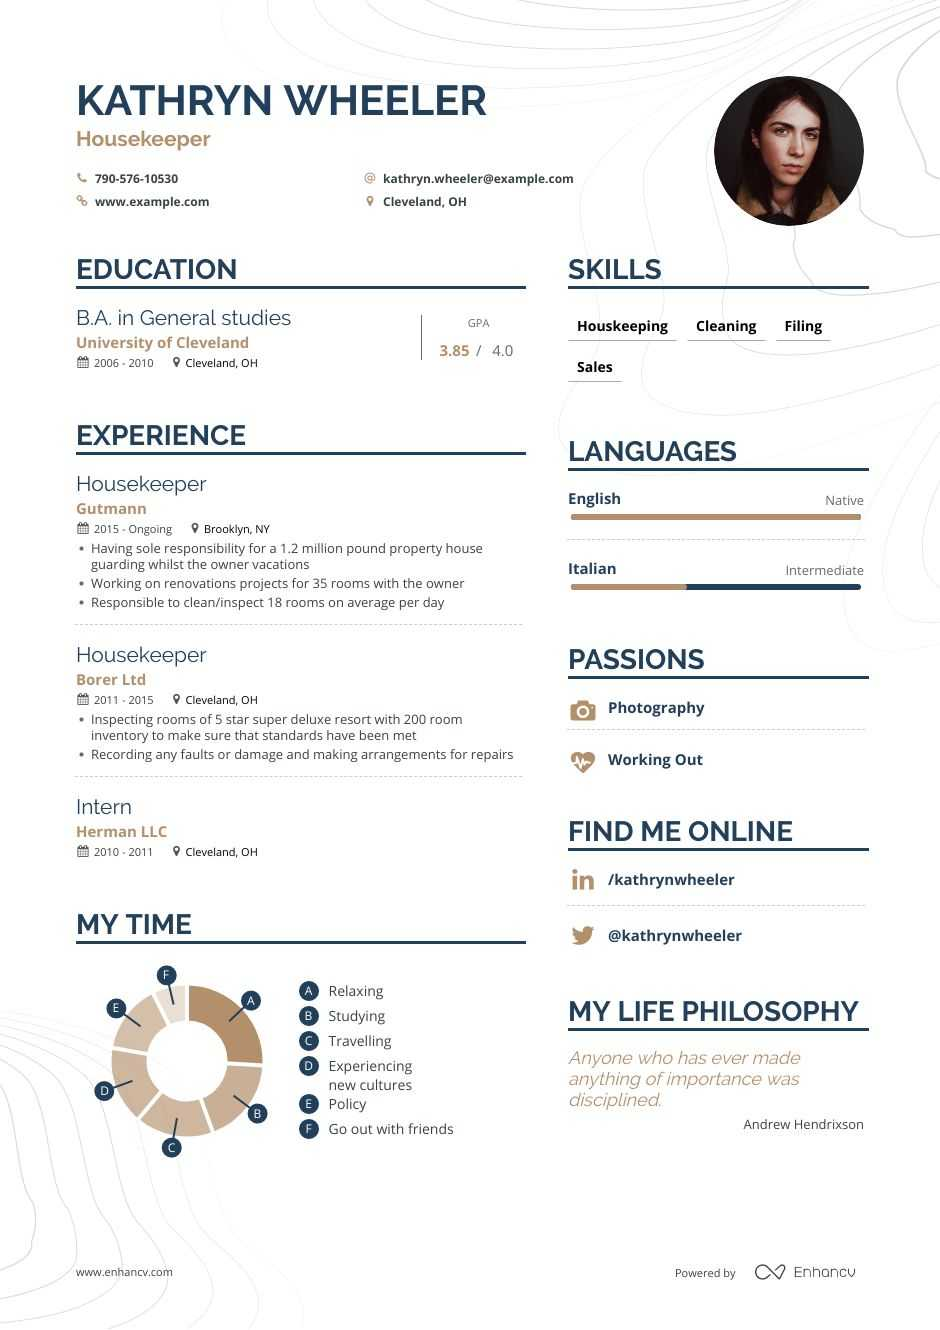 housekeeper resume examples pro tips featured enhancv hotel housekeeping skills reference Resume Hotel Housekeeping Resume Skills